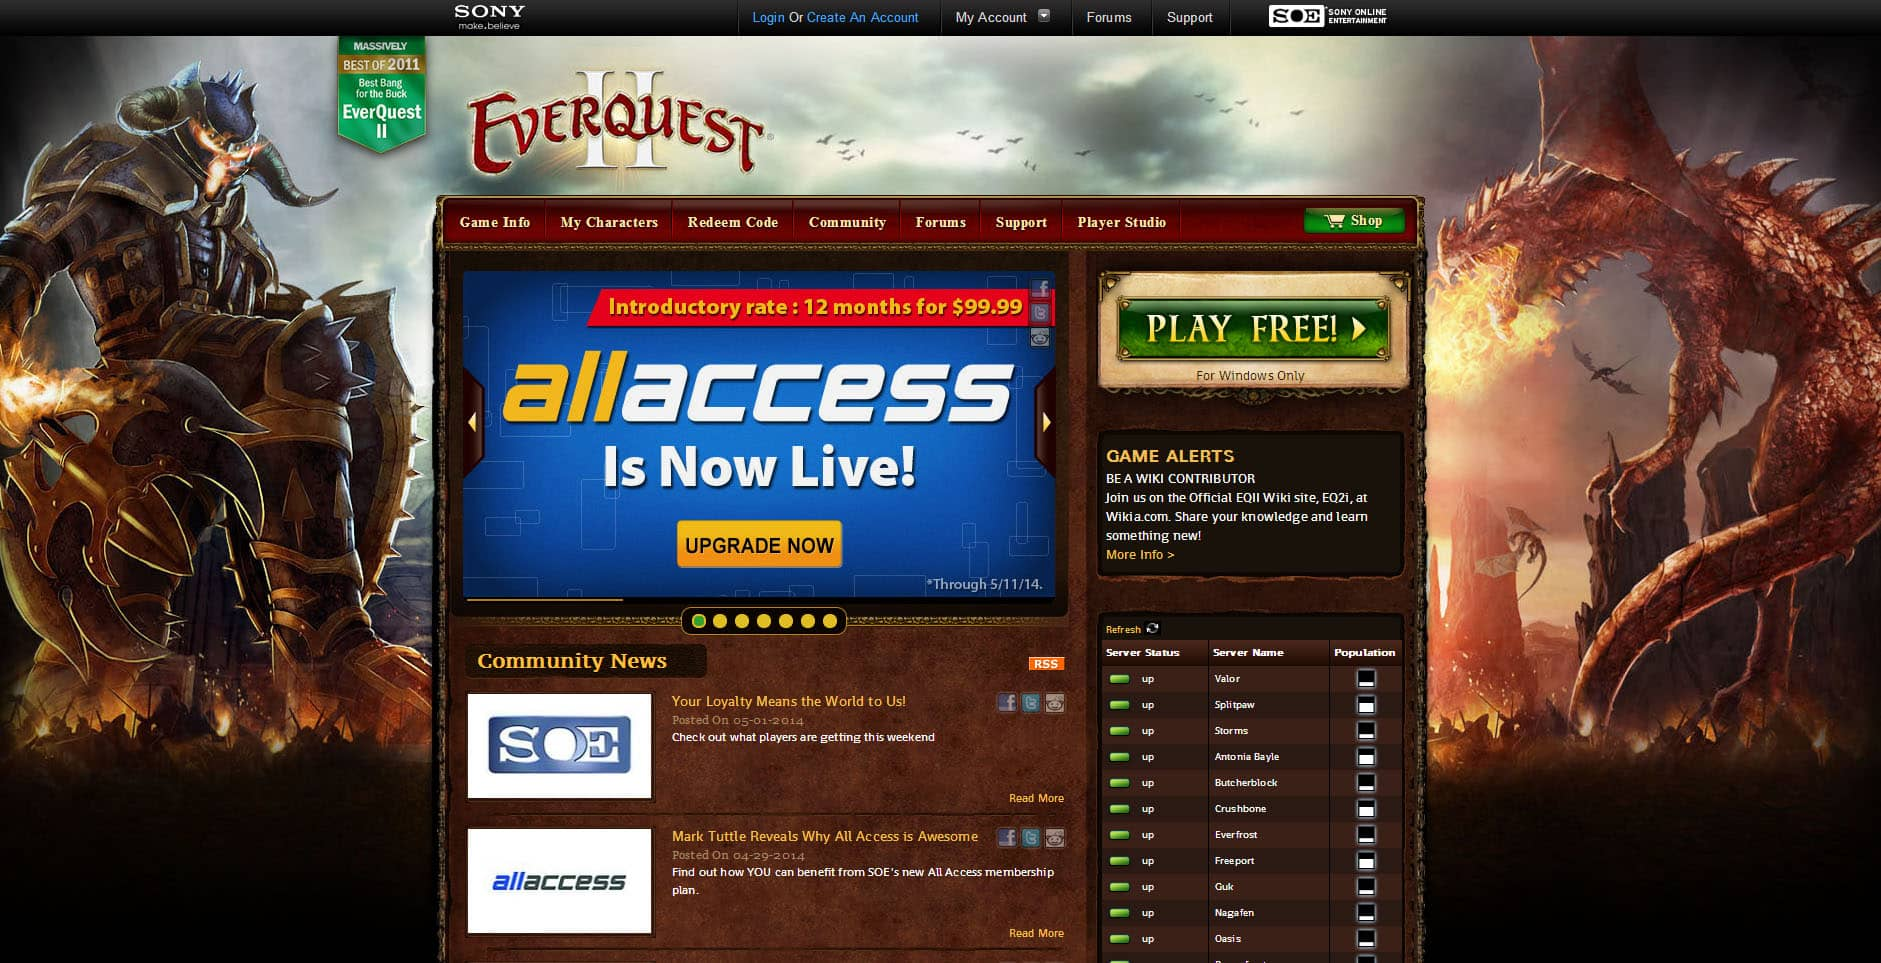 EverQuest II - Aaron Bartholomew Development